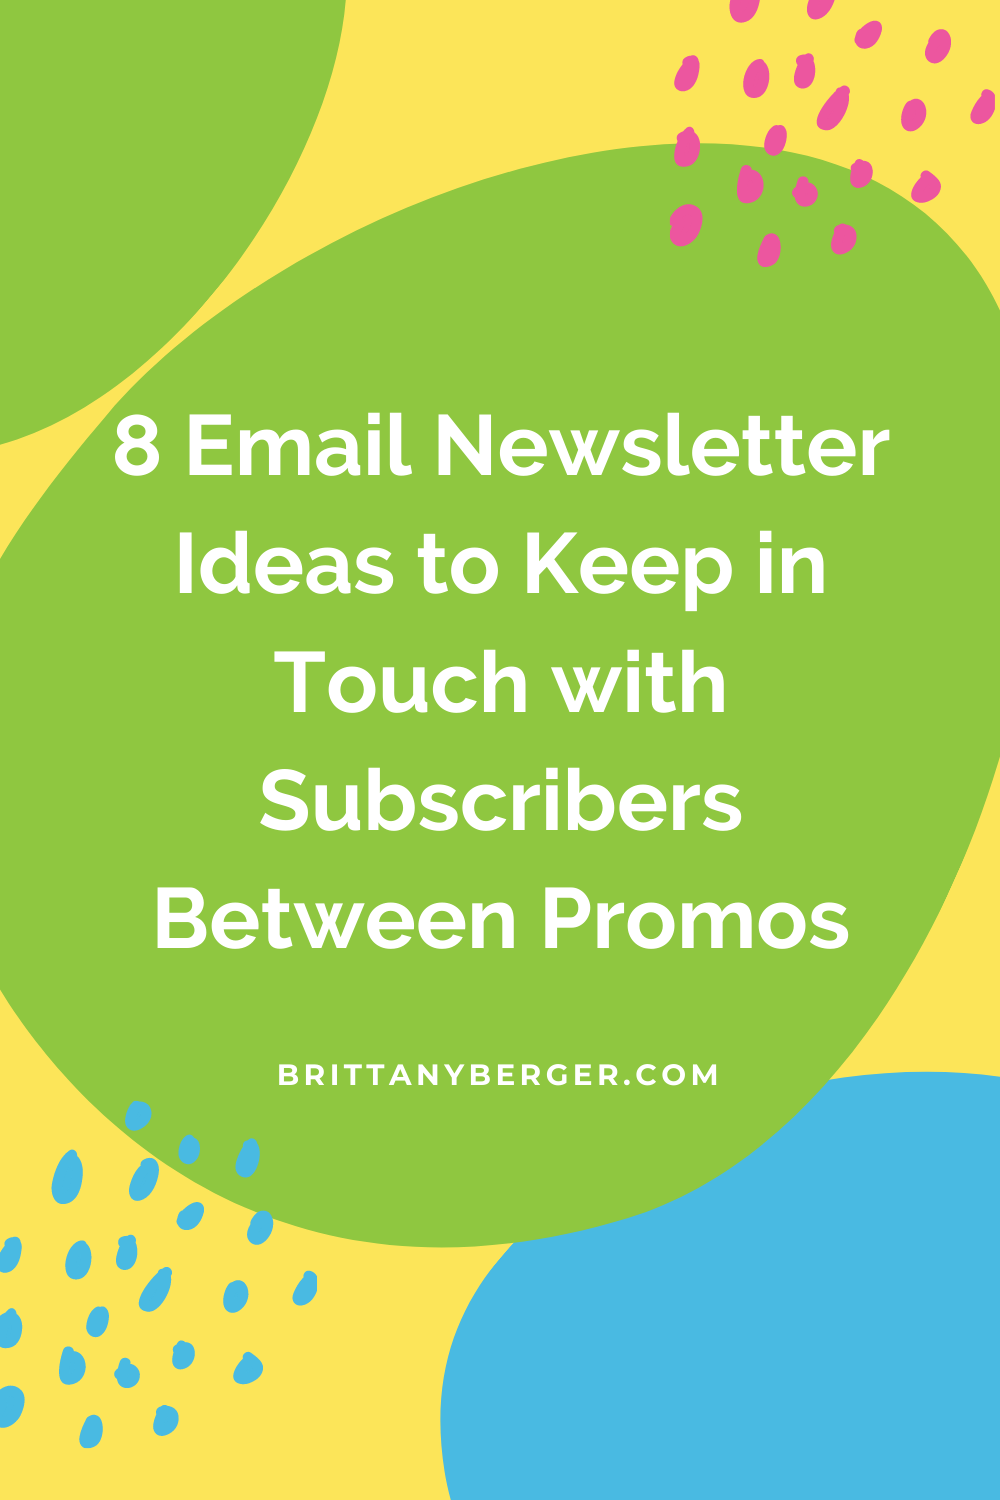 8 Email Newsletter Ideas to Keep in Touch with Subscribers Between Promos